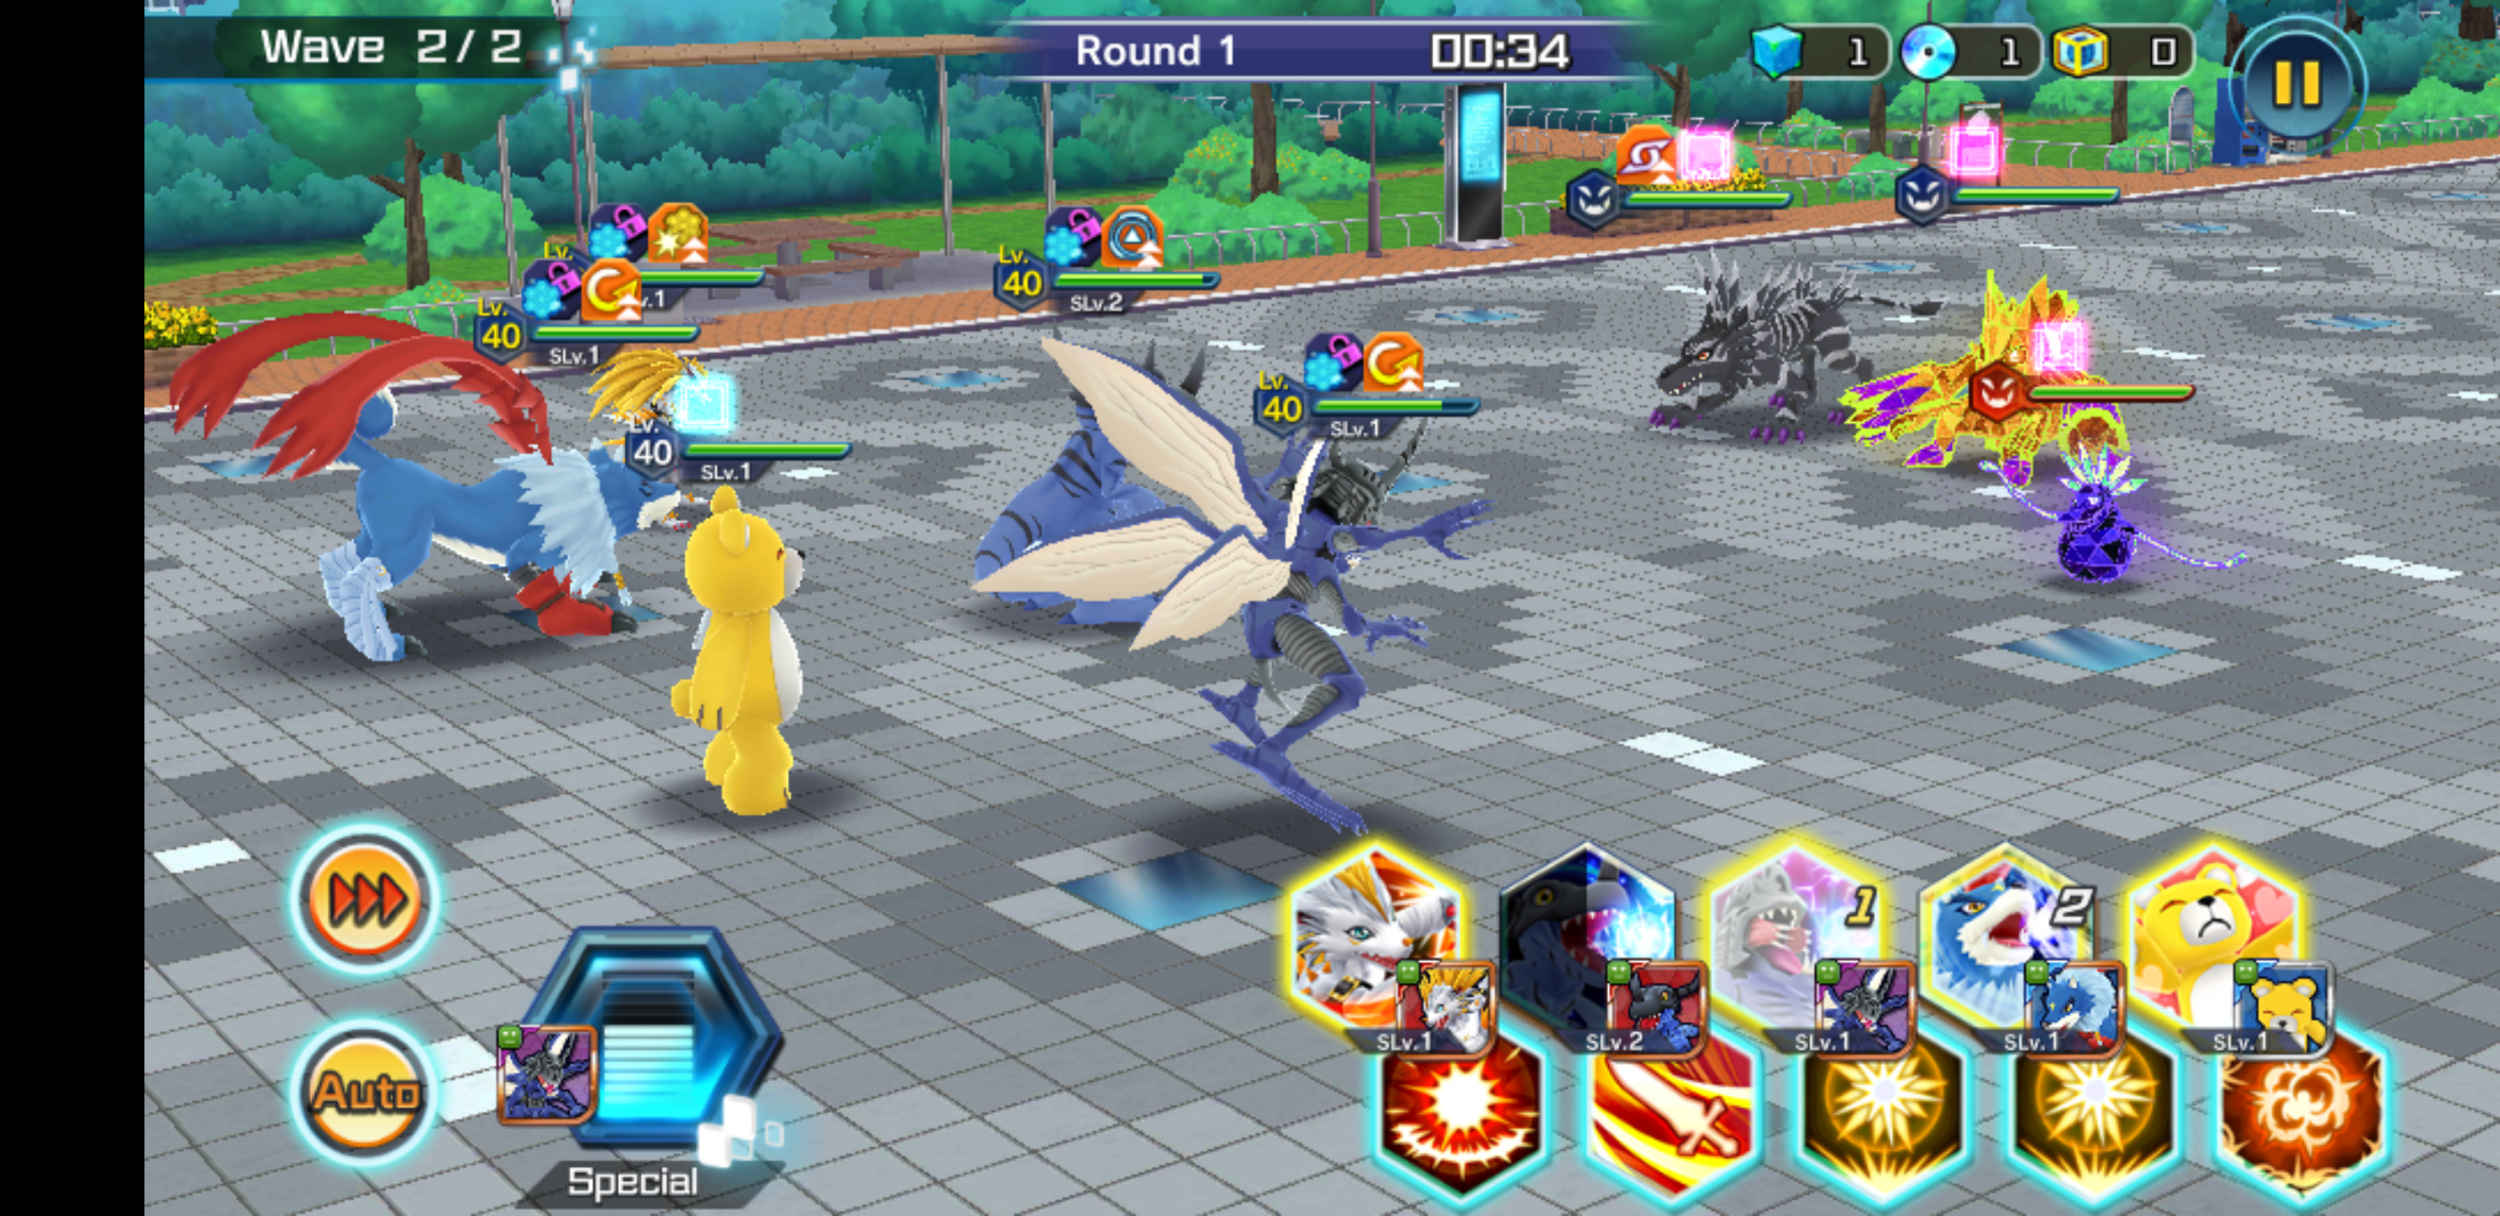 'Digimon ReArise' Guide: Reroll, Widget and Digiwalk Explained